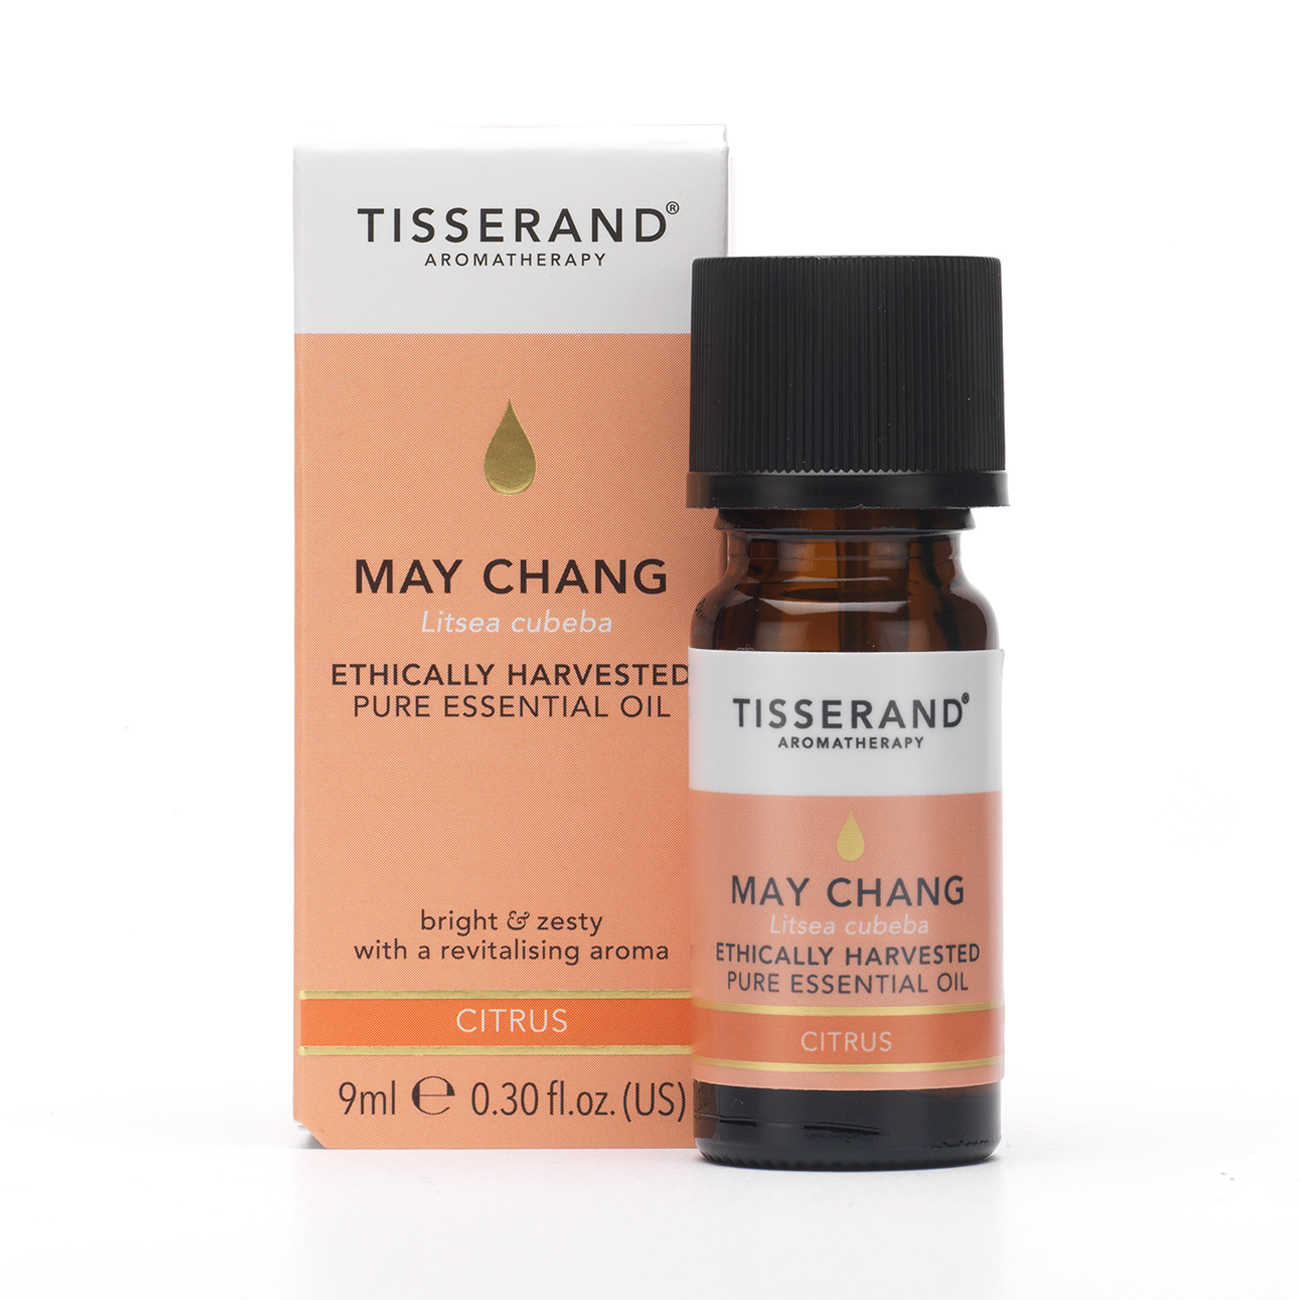 May Chang Ethically Harvested Pure Essential Oil 9ml